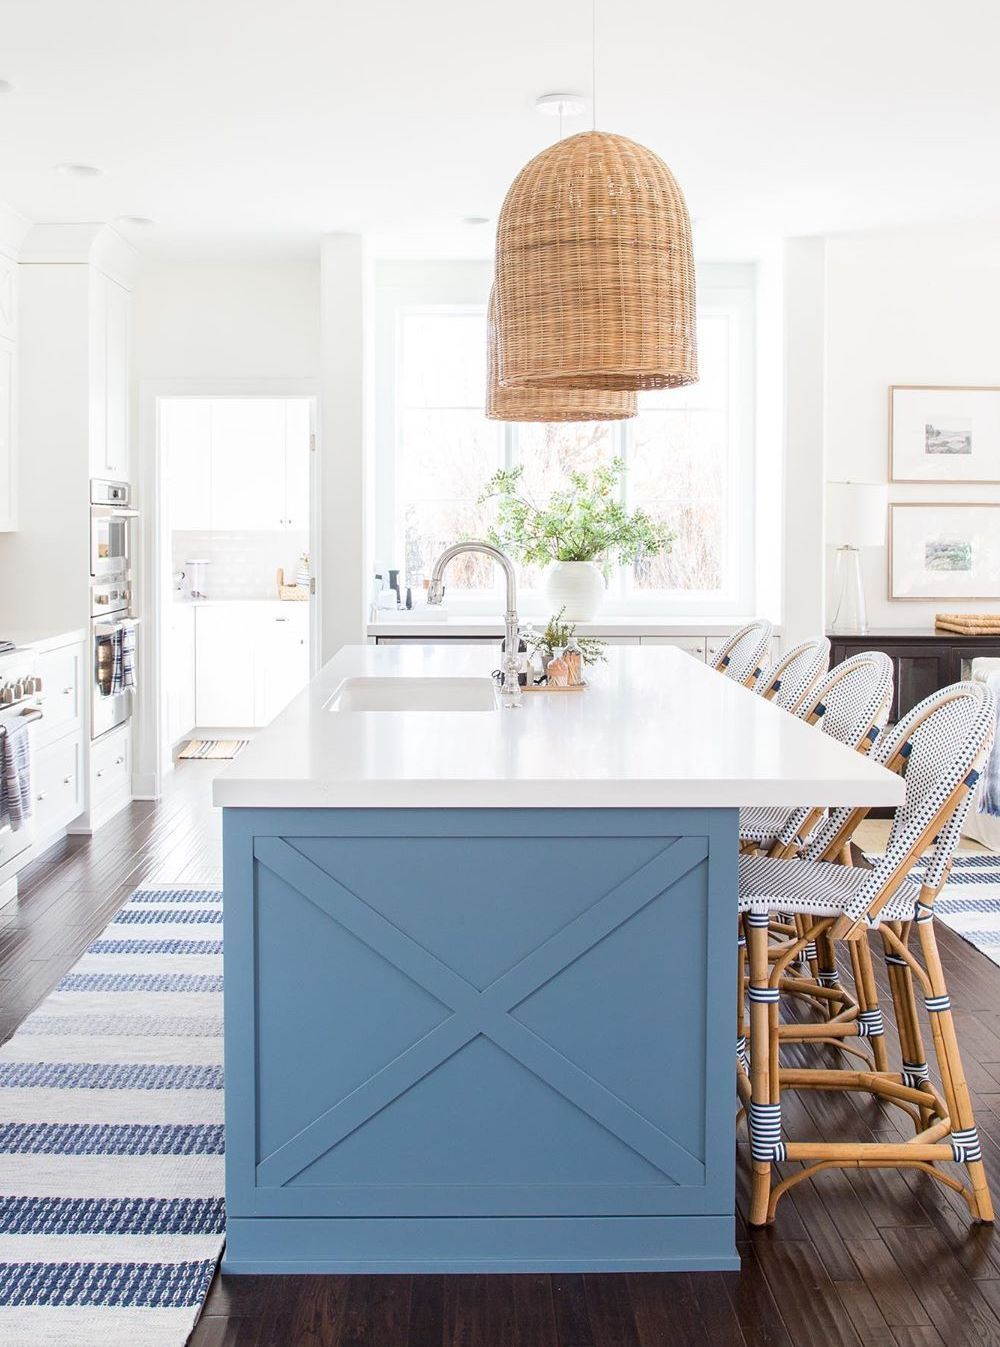 17 Coastal Kitchen Decor Ideas For A Beach Home